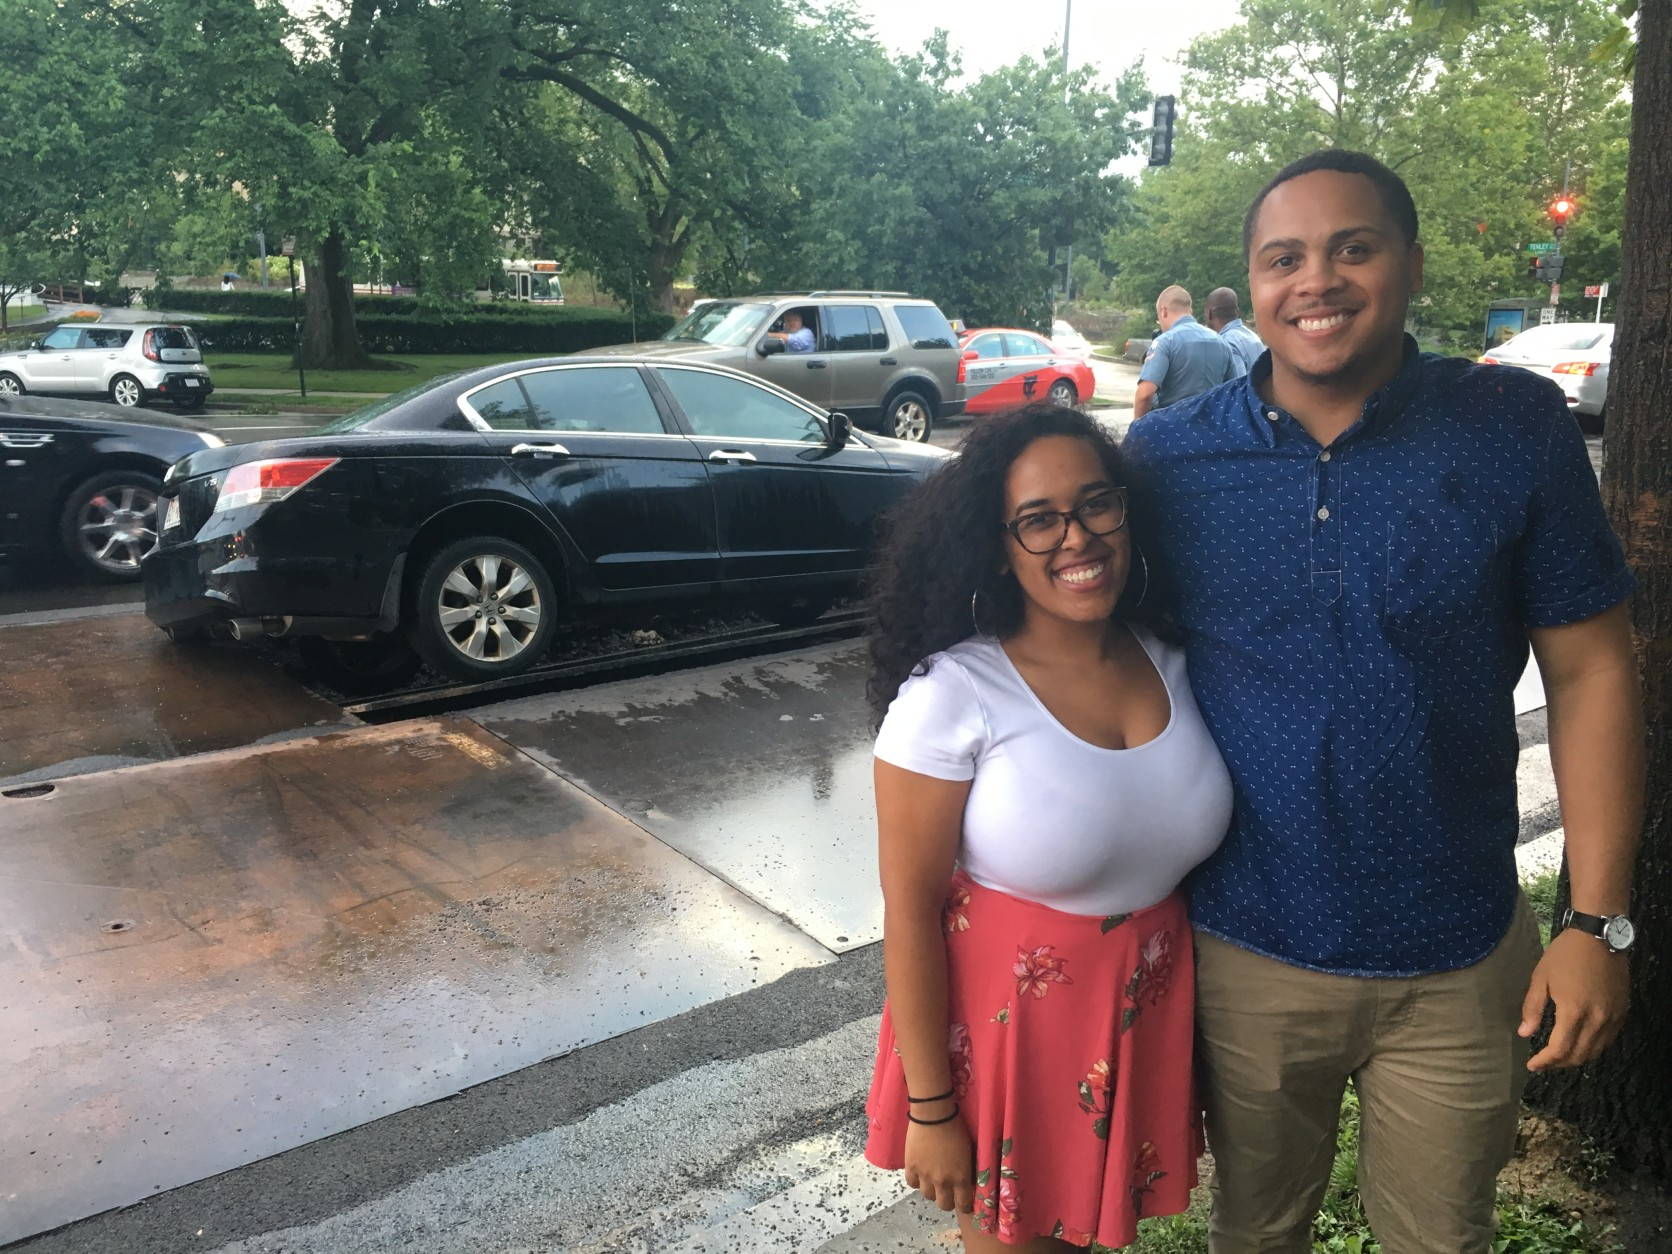 Scott Thomas and Britnni Guevarna were going to get milkshakes when the car they were in started to sink as it drove over a metal panel in Tenleytown. (Mike Murillo/WTOP)